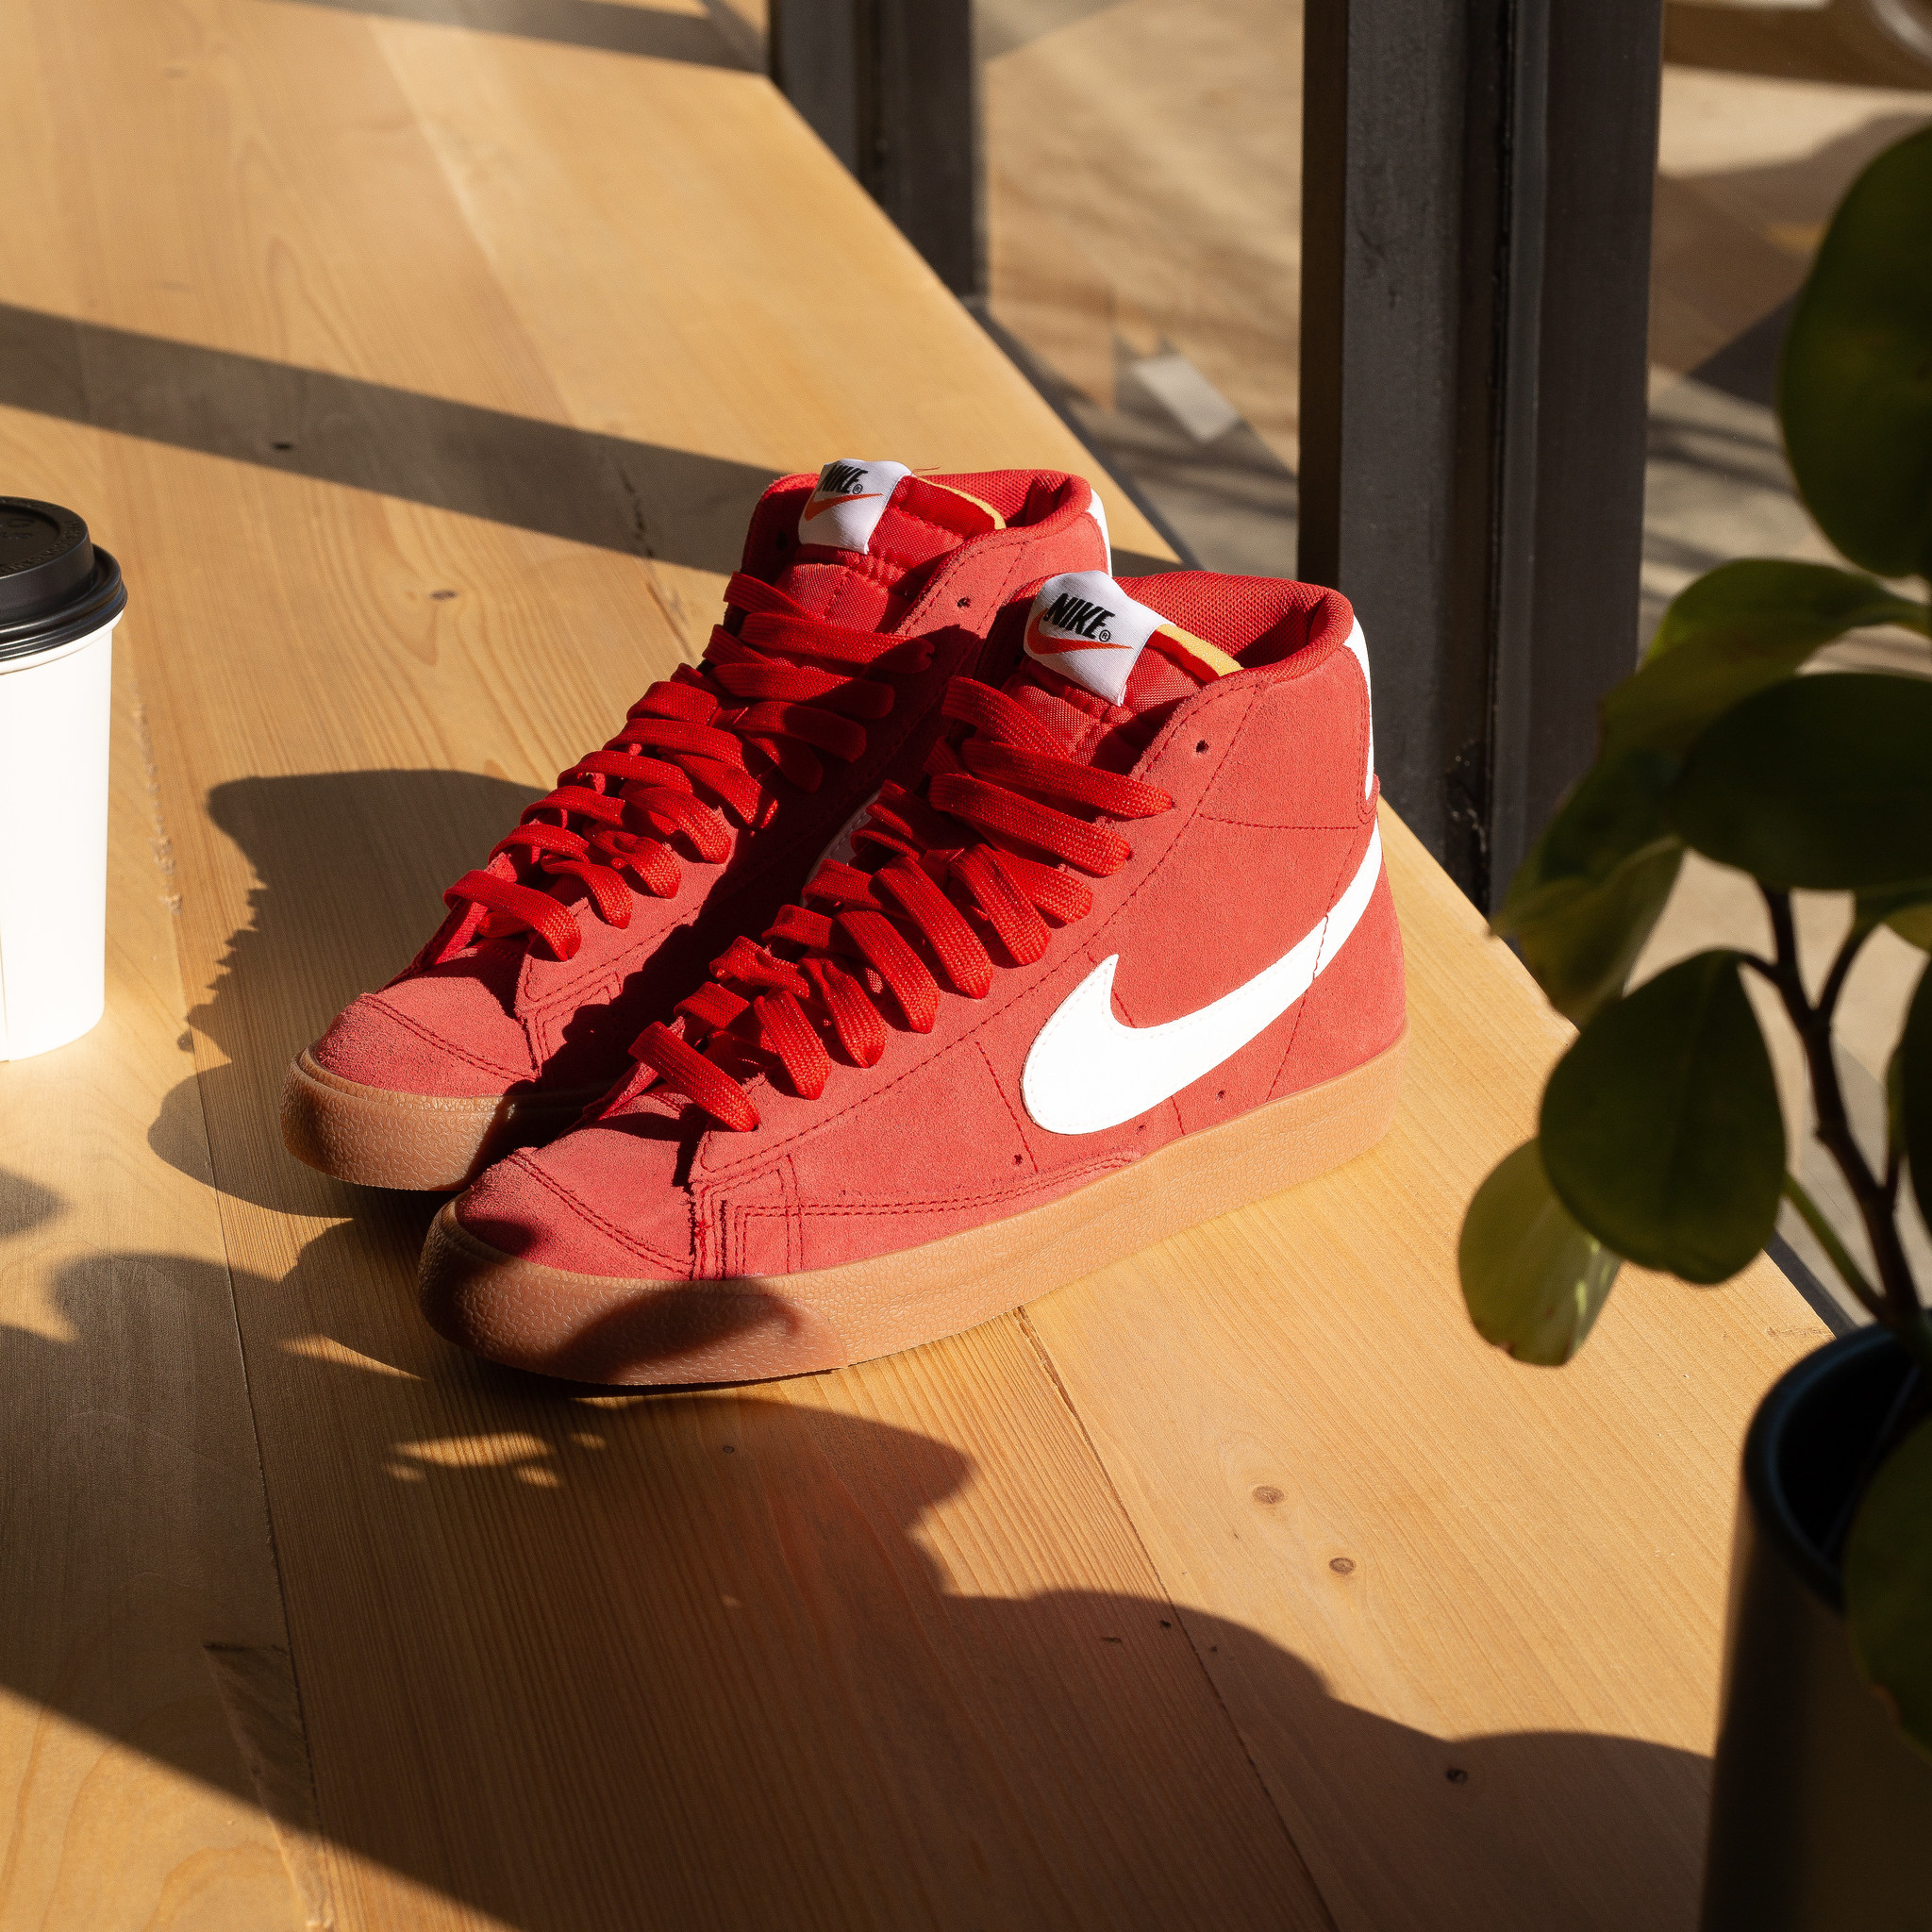 Nike Blazer Mid '77 Suede University Red